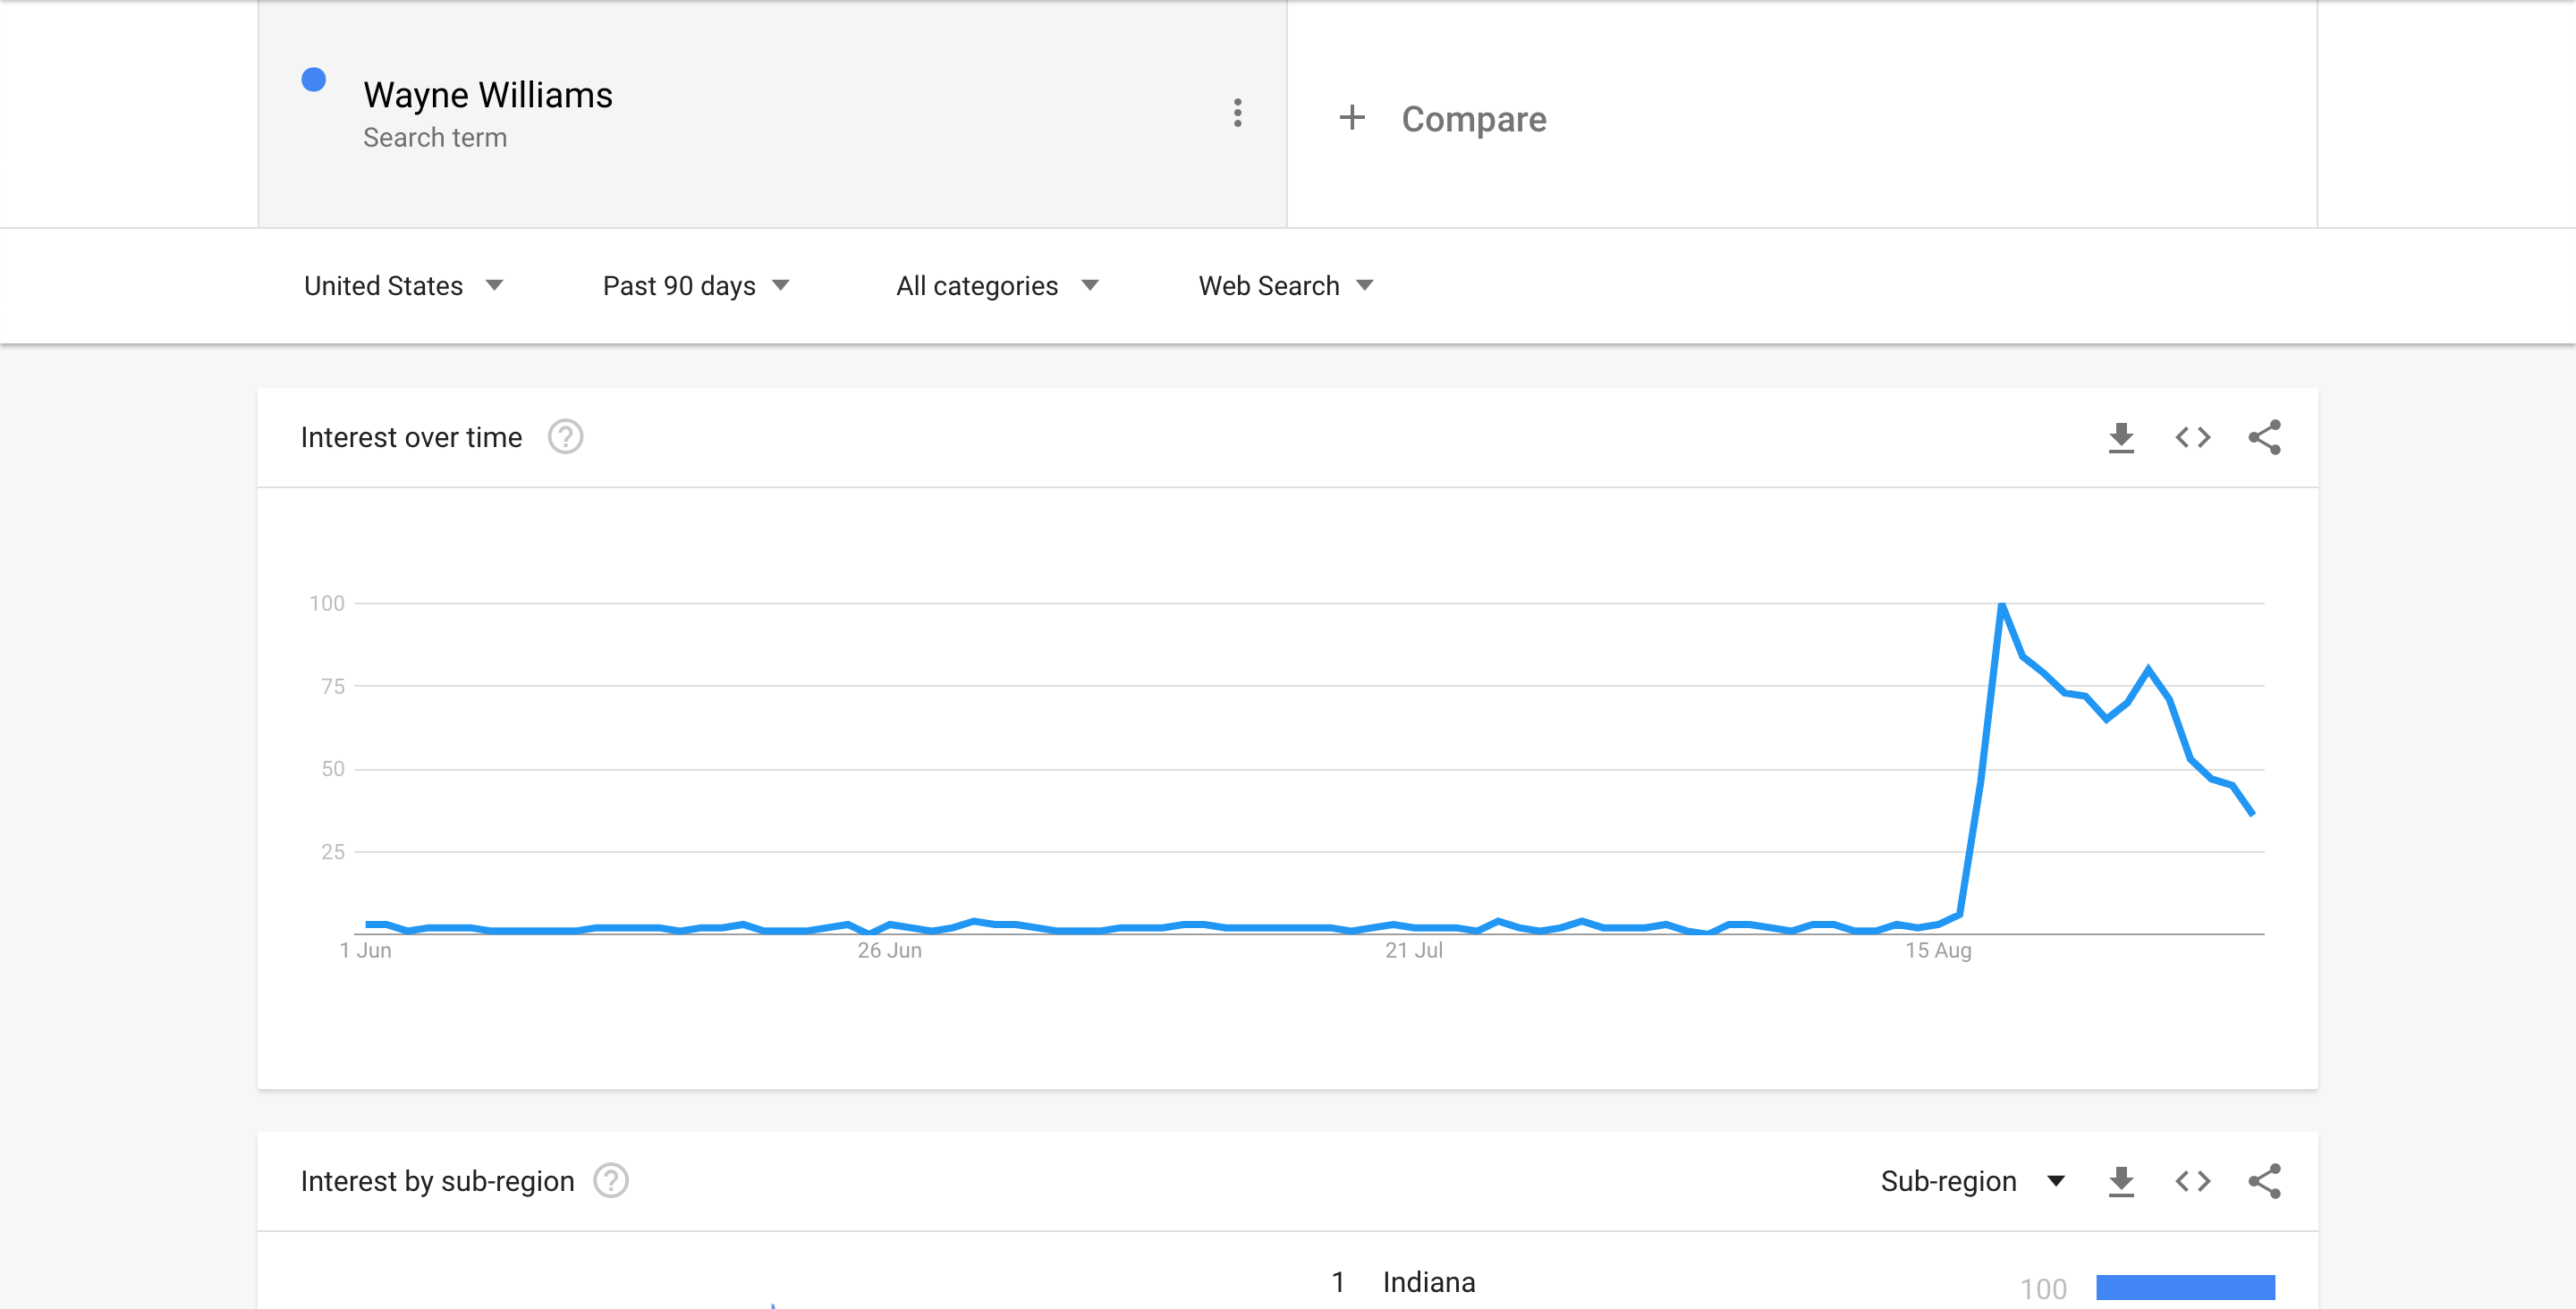 Wayne Williams - Google Trends Screenshot